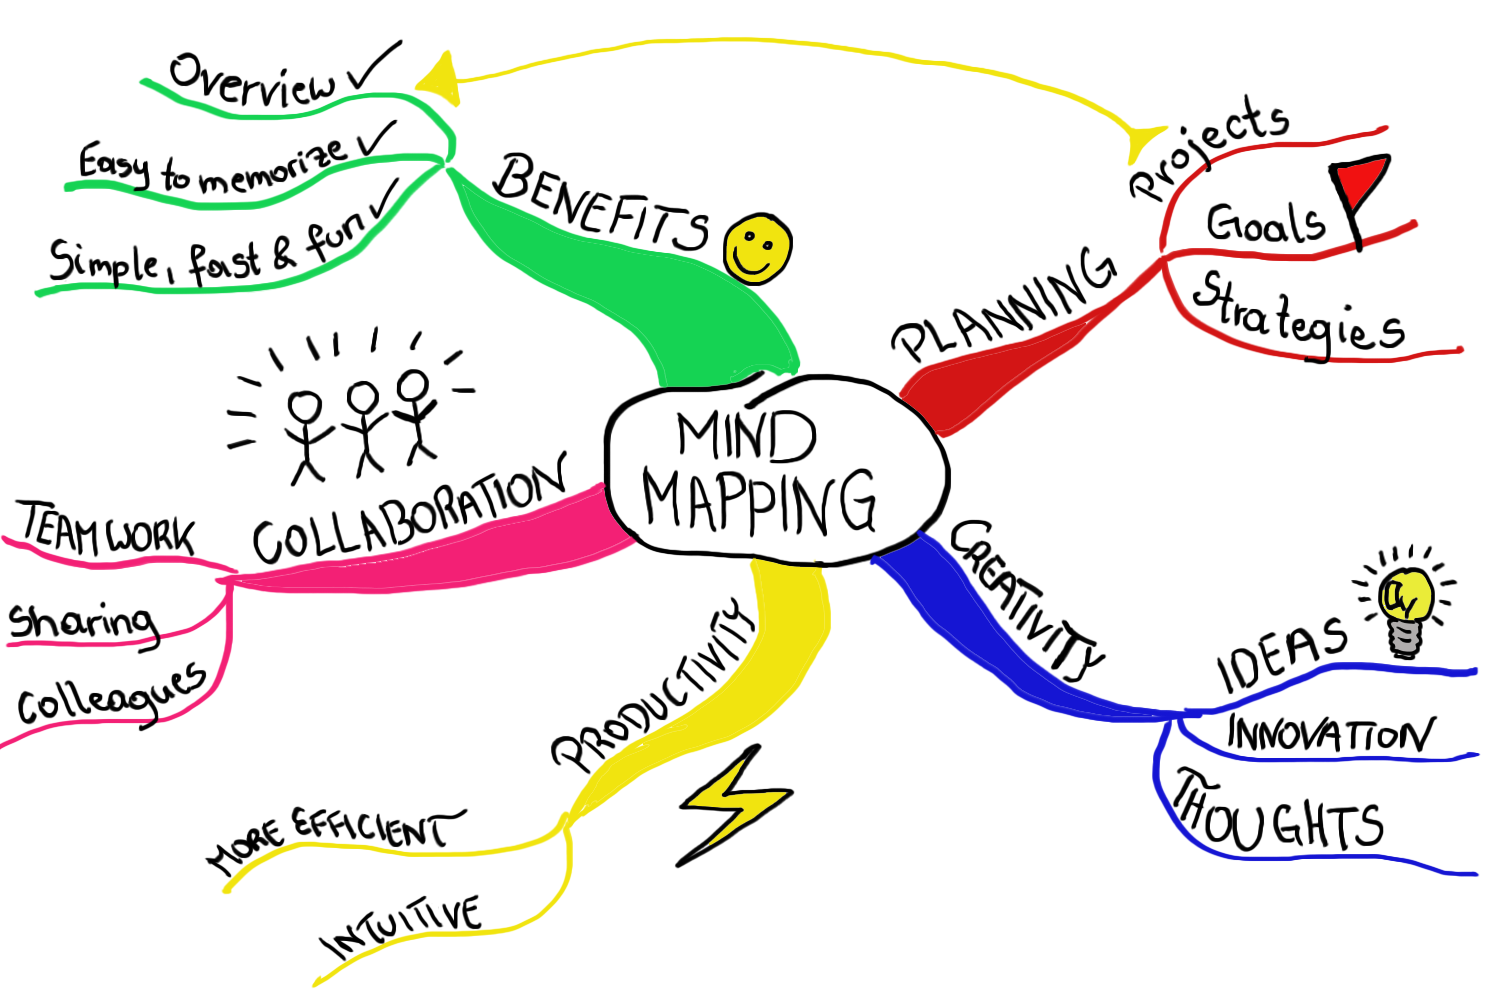 Handdrawn mind map about mind mapping